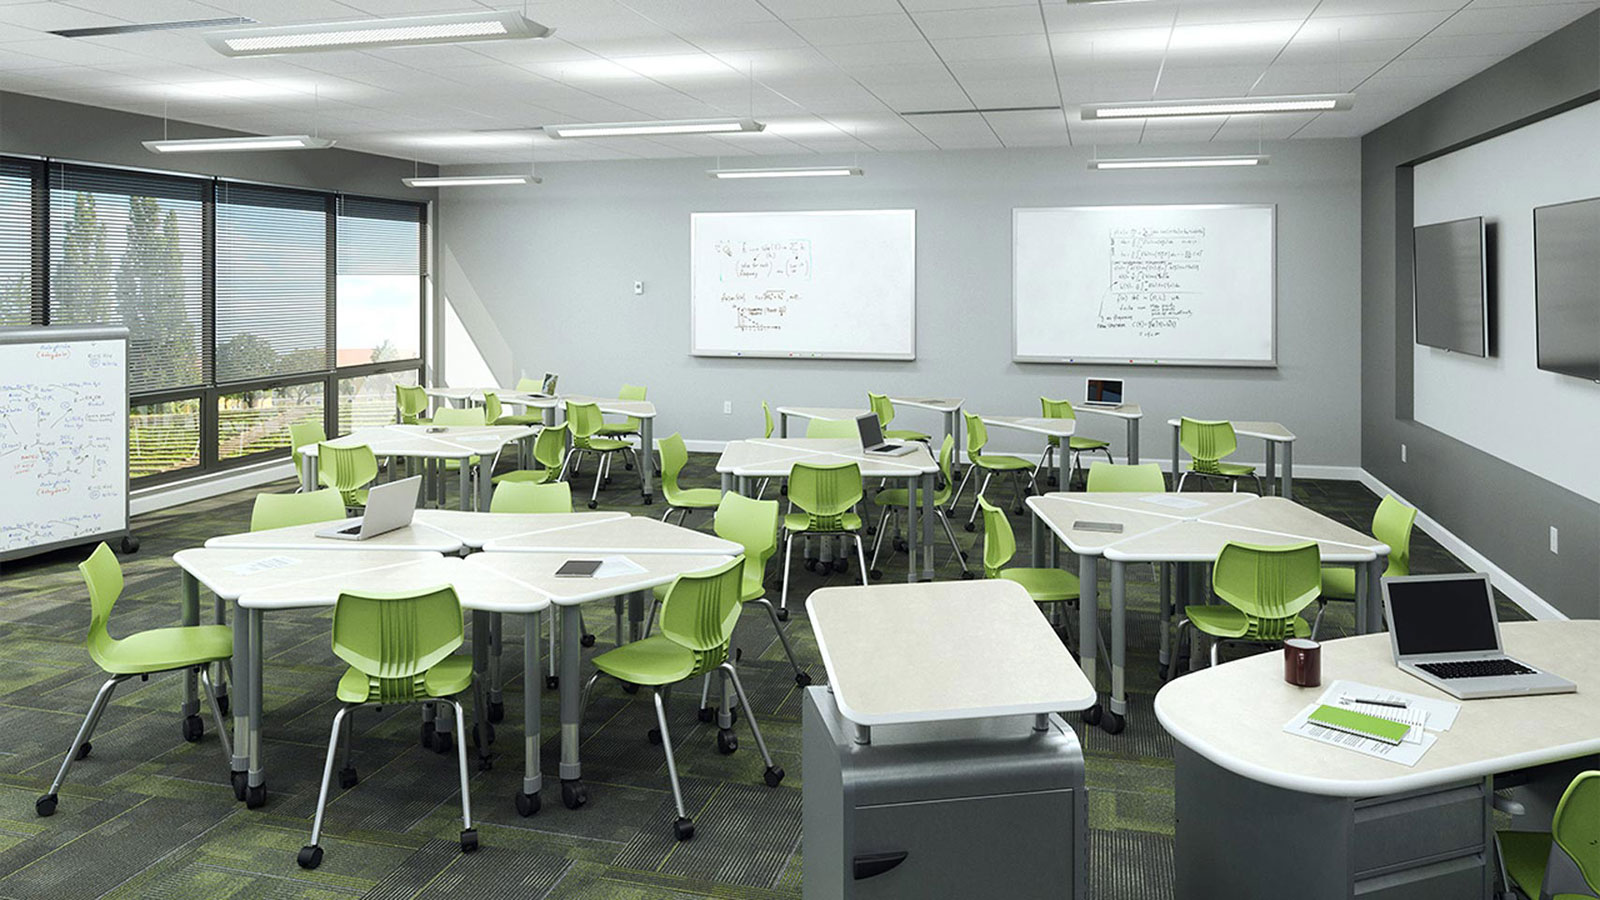 3D rendered furniture in STEM classroom with table clusters and whiteboards